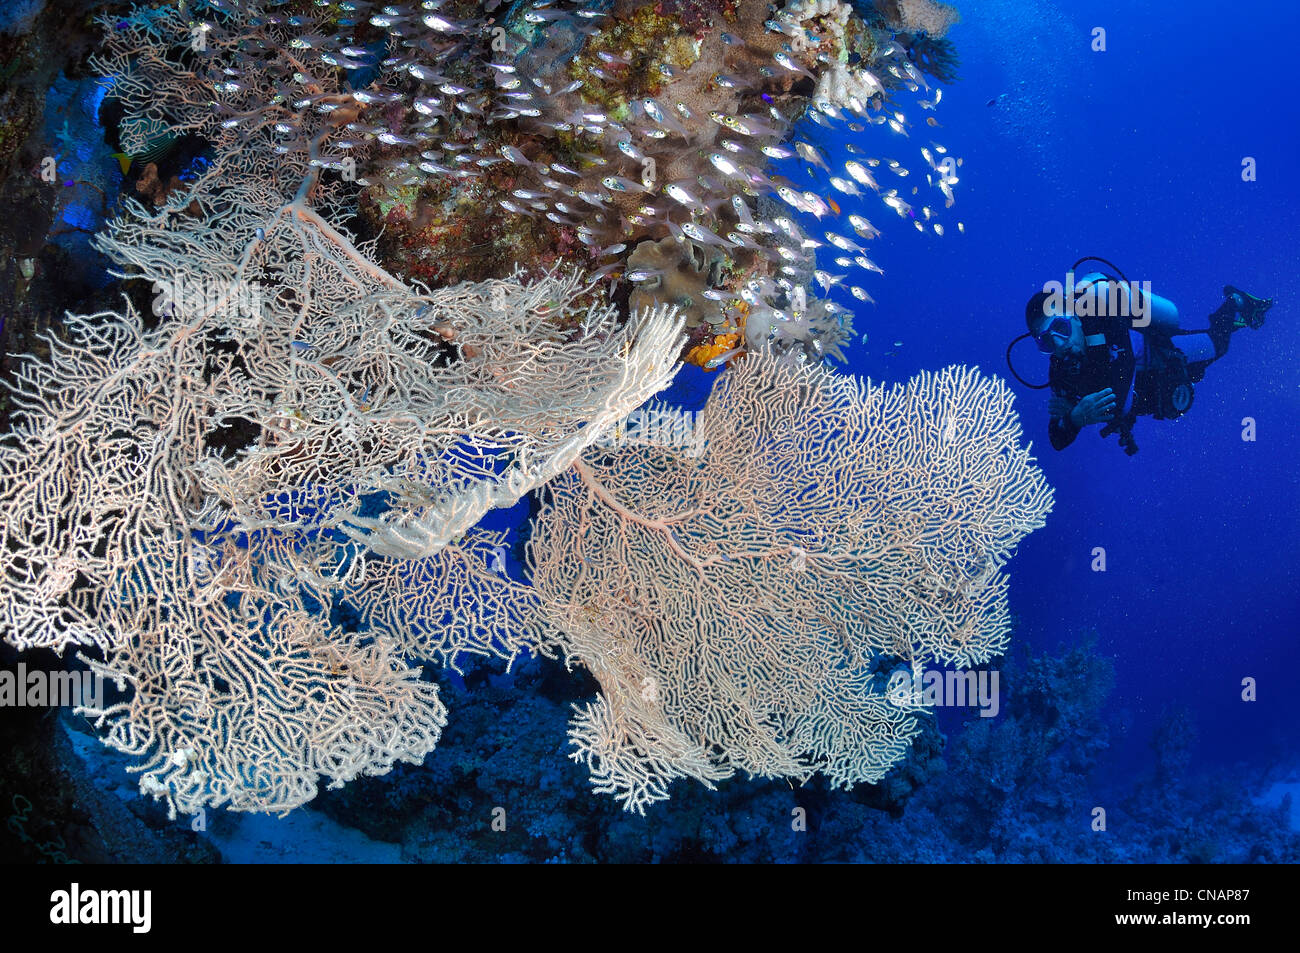 Egypt, Red sea, a coral reef with fan-corals (Subergorgia hicksoni) and a diver - Stock Image